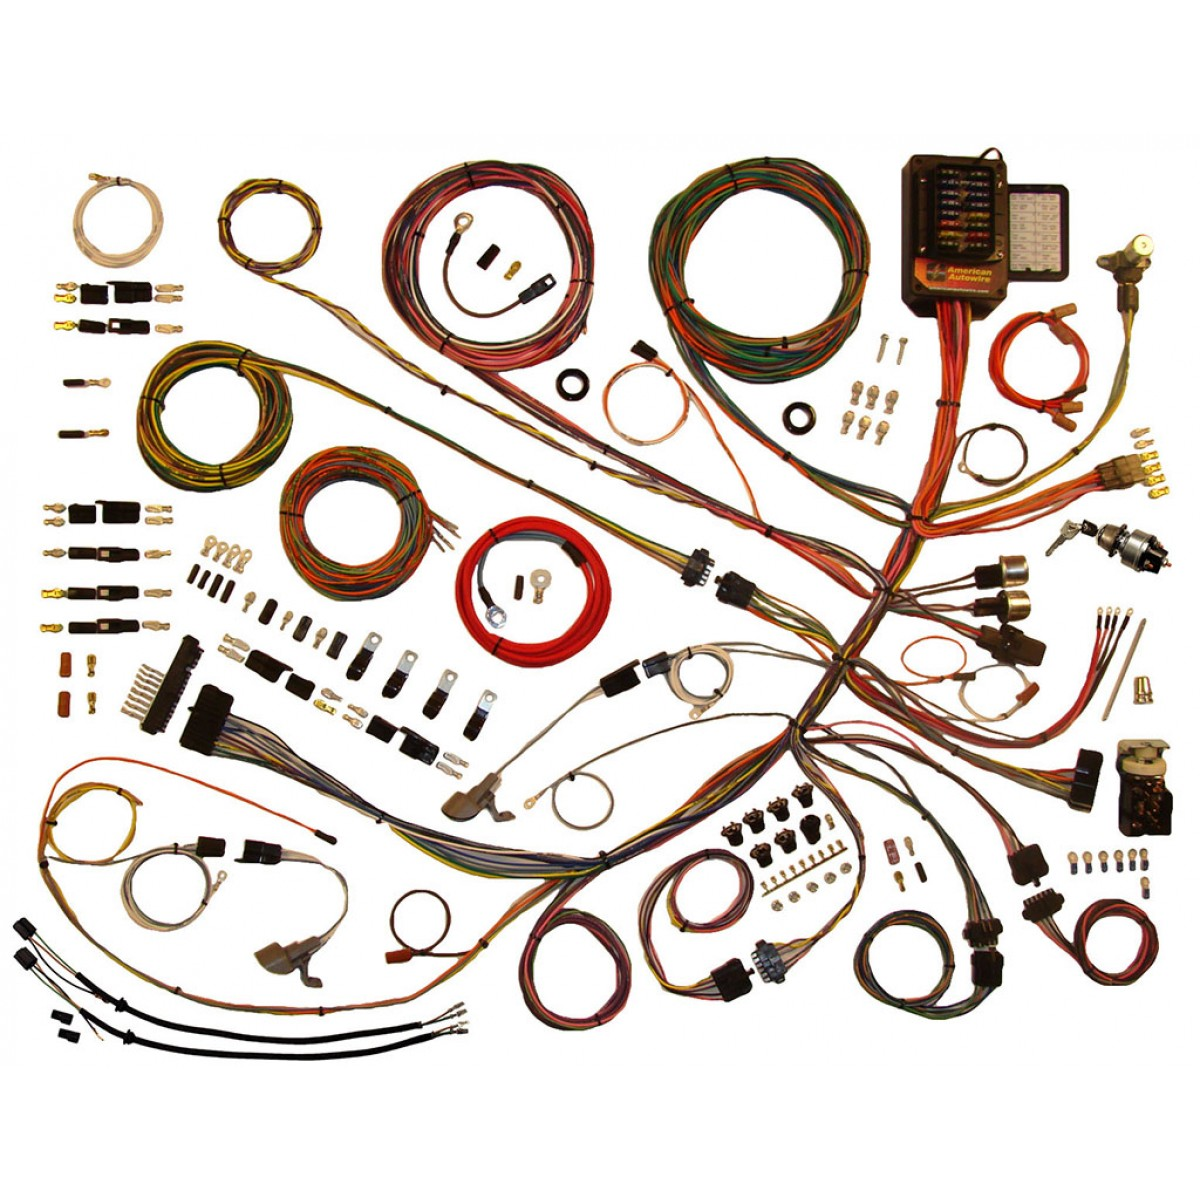 complete wiring harness kit 1953 1956 ford f100 part 510303 ford truck wiring harness f100 1953 1956 ford f100 wiring harness complete wiring harness kit ford truck wiring harness kits at eliteediting.co